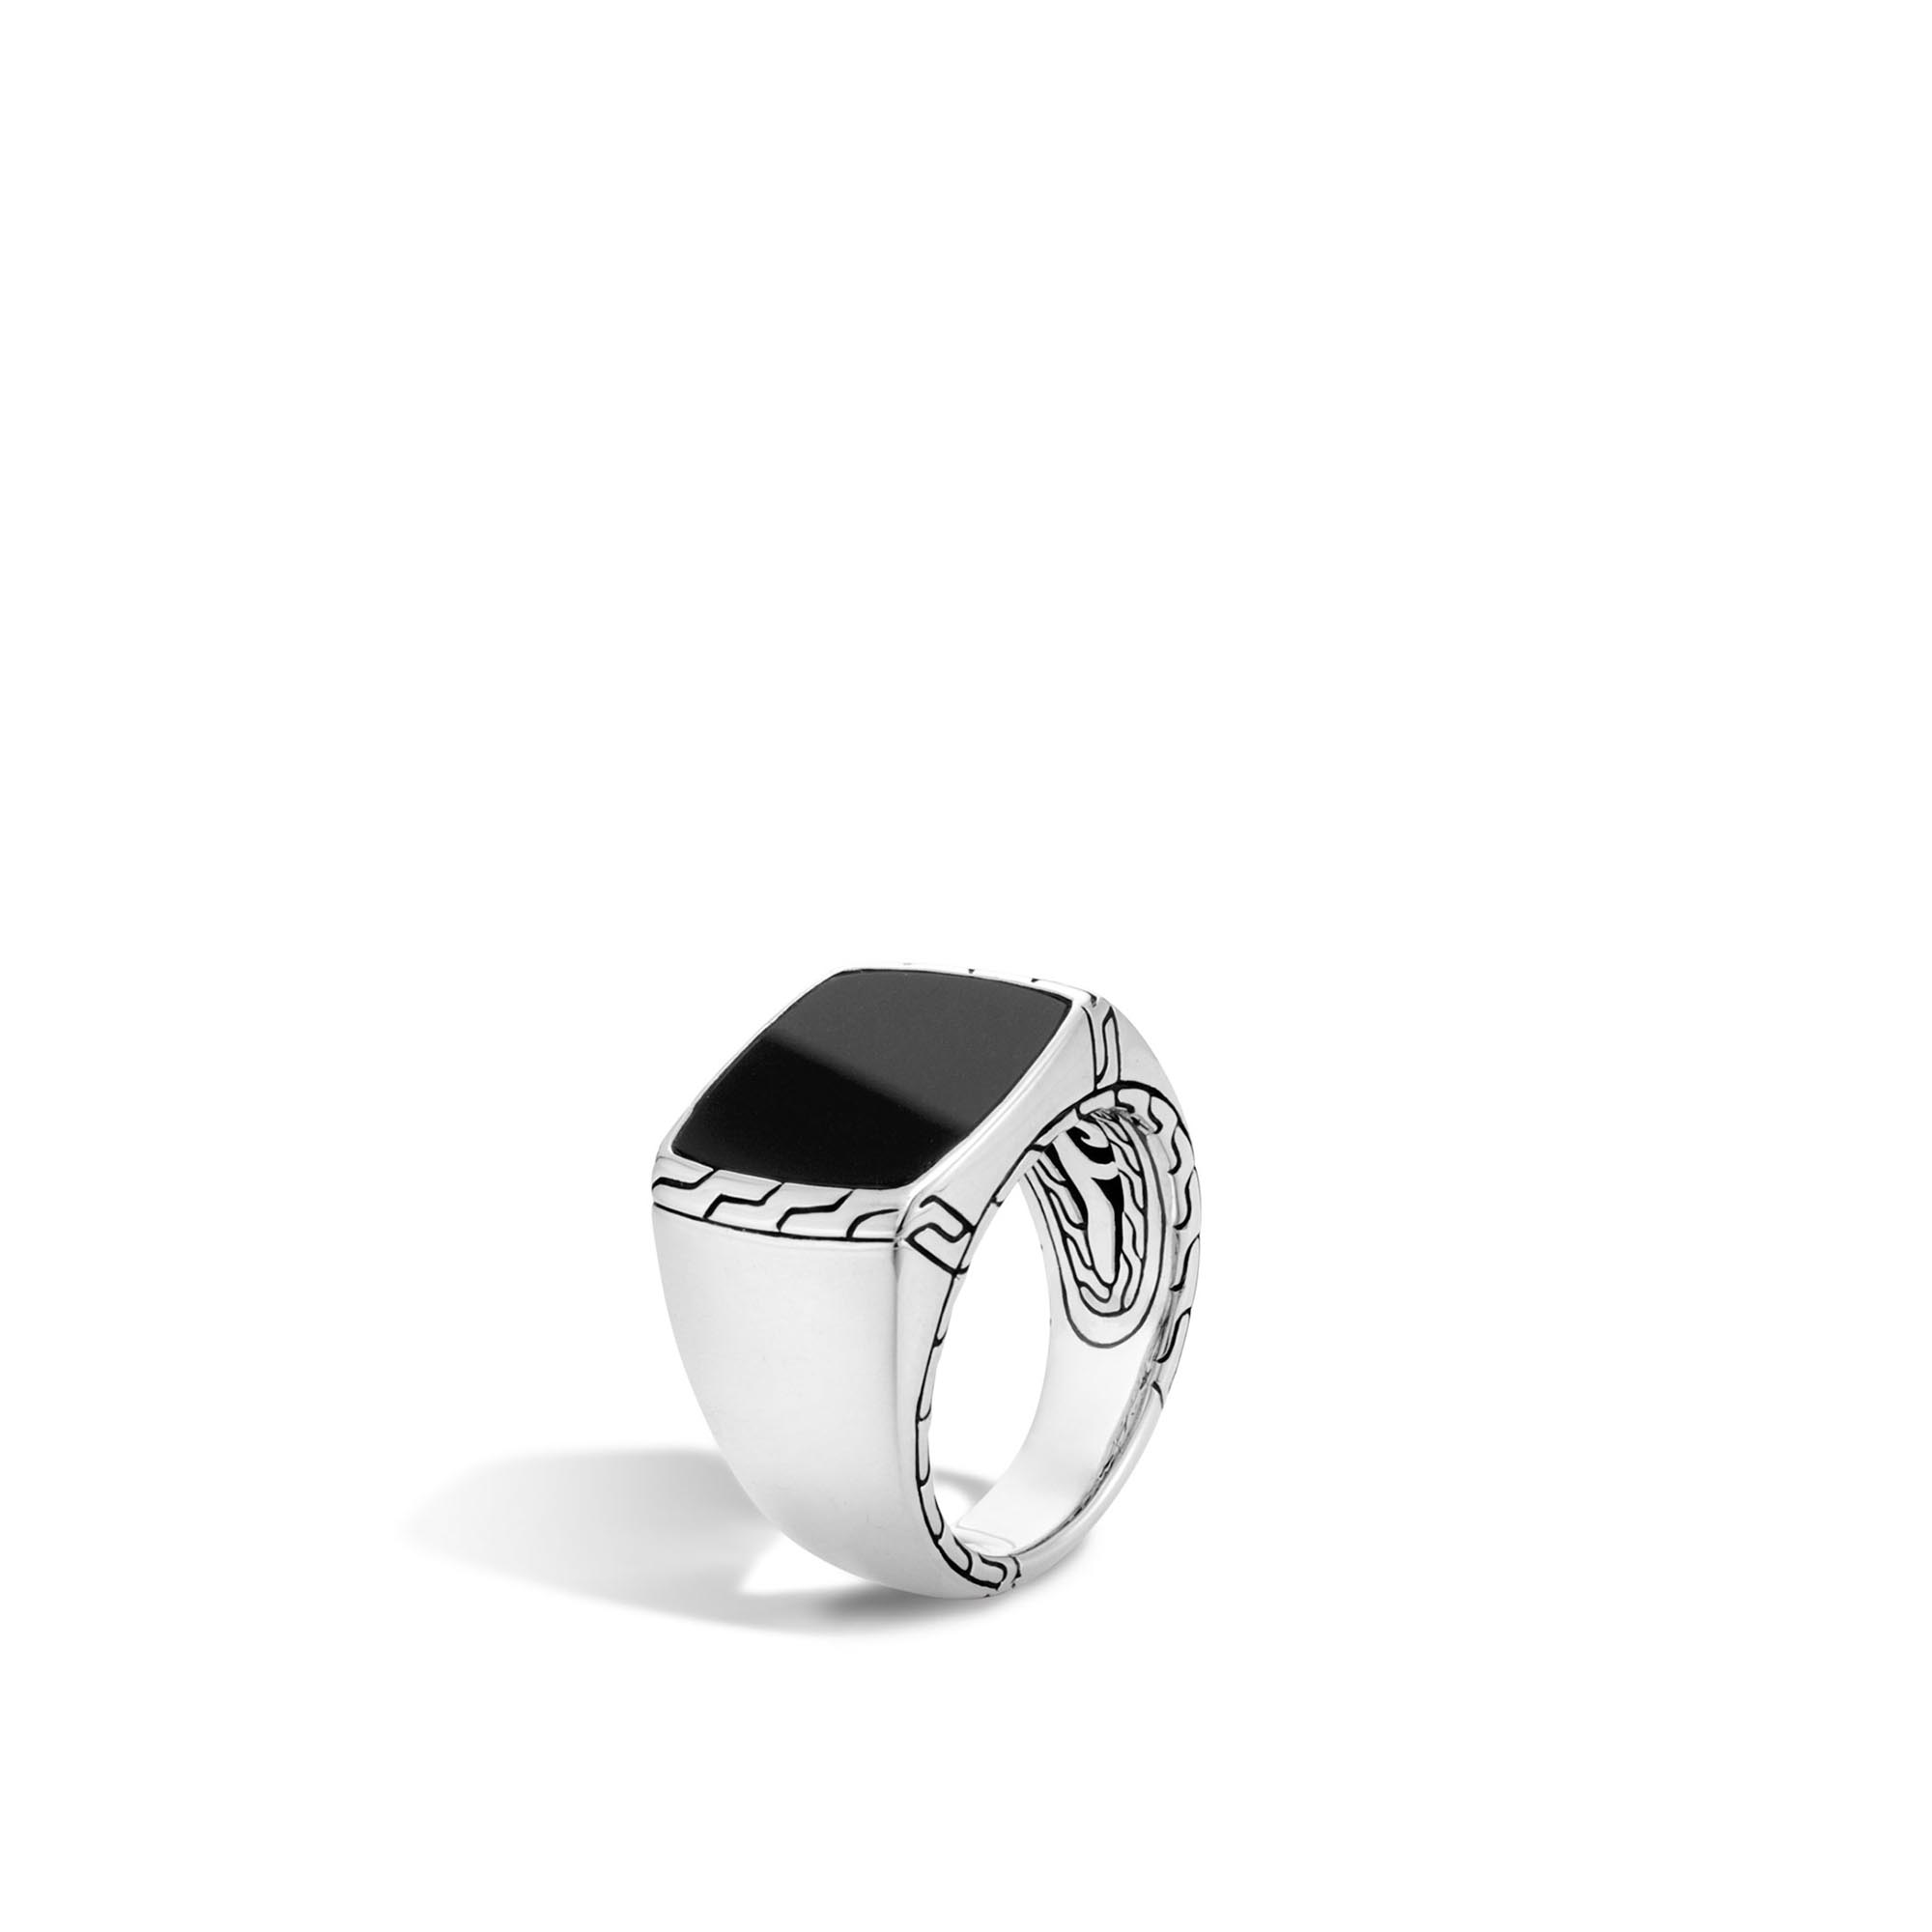 John Hardy: Sterling Silver  Classic Chain Signet Ring With Black Jade Ring Size: 10 Ring Measures 6mm To 16.5mm Wide